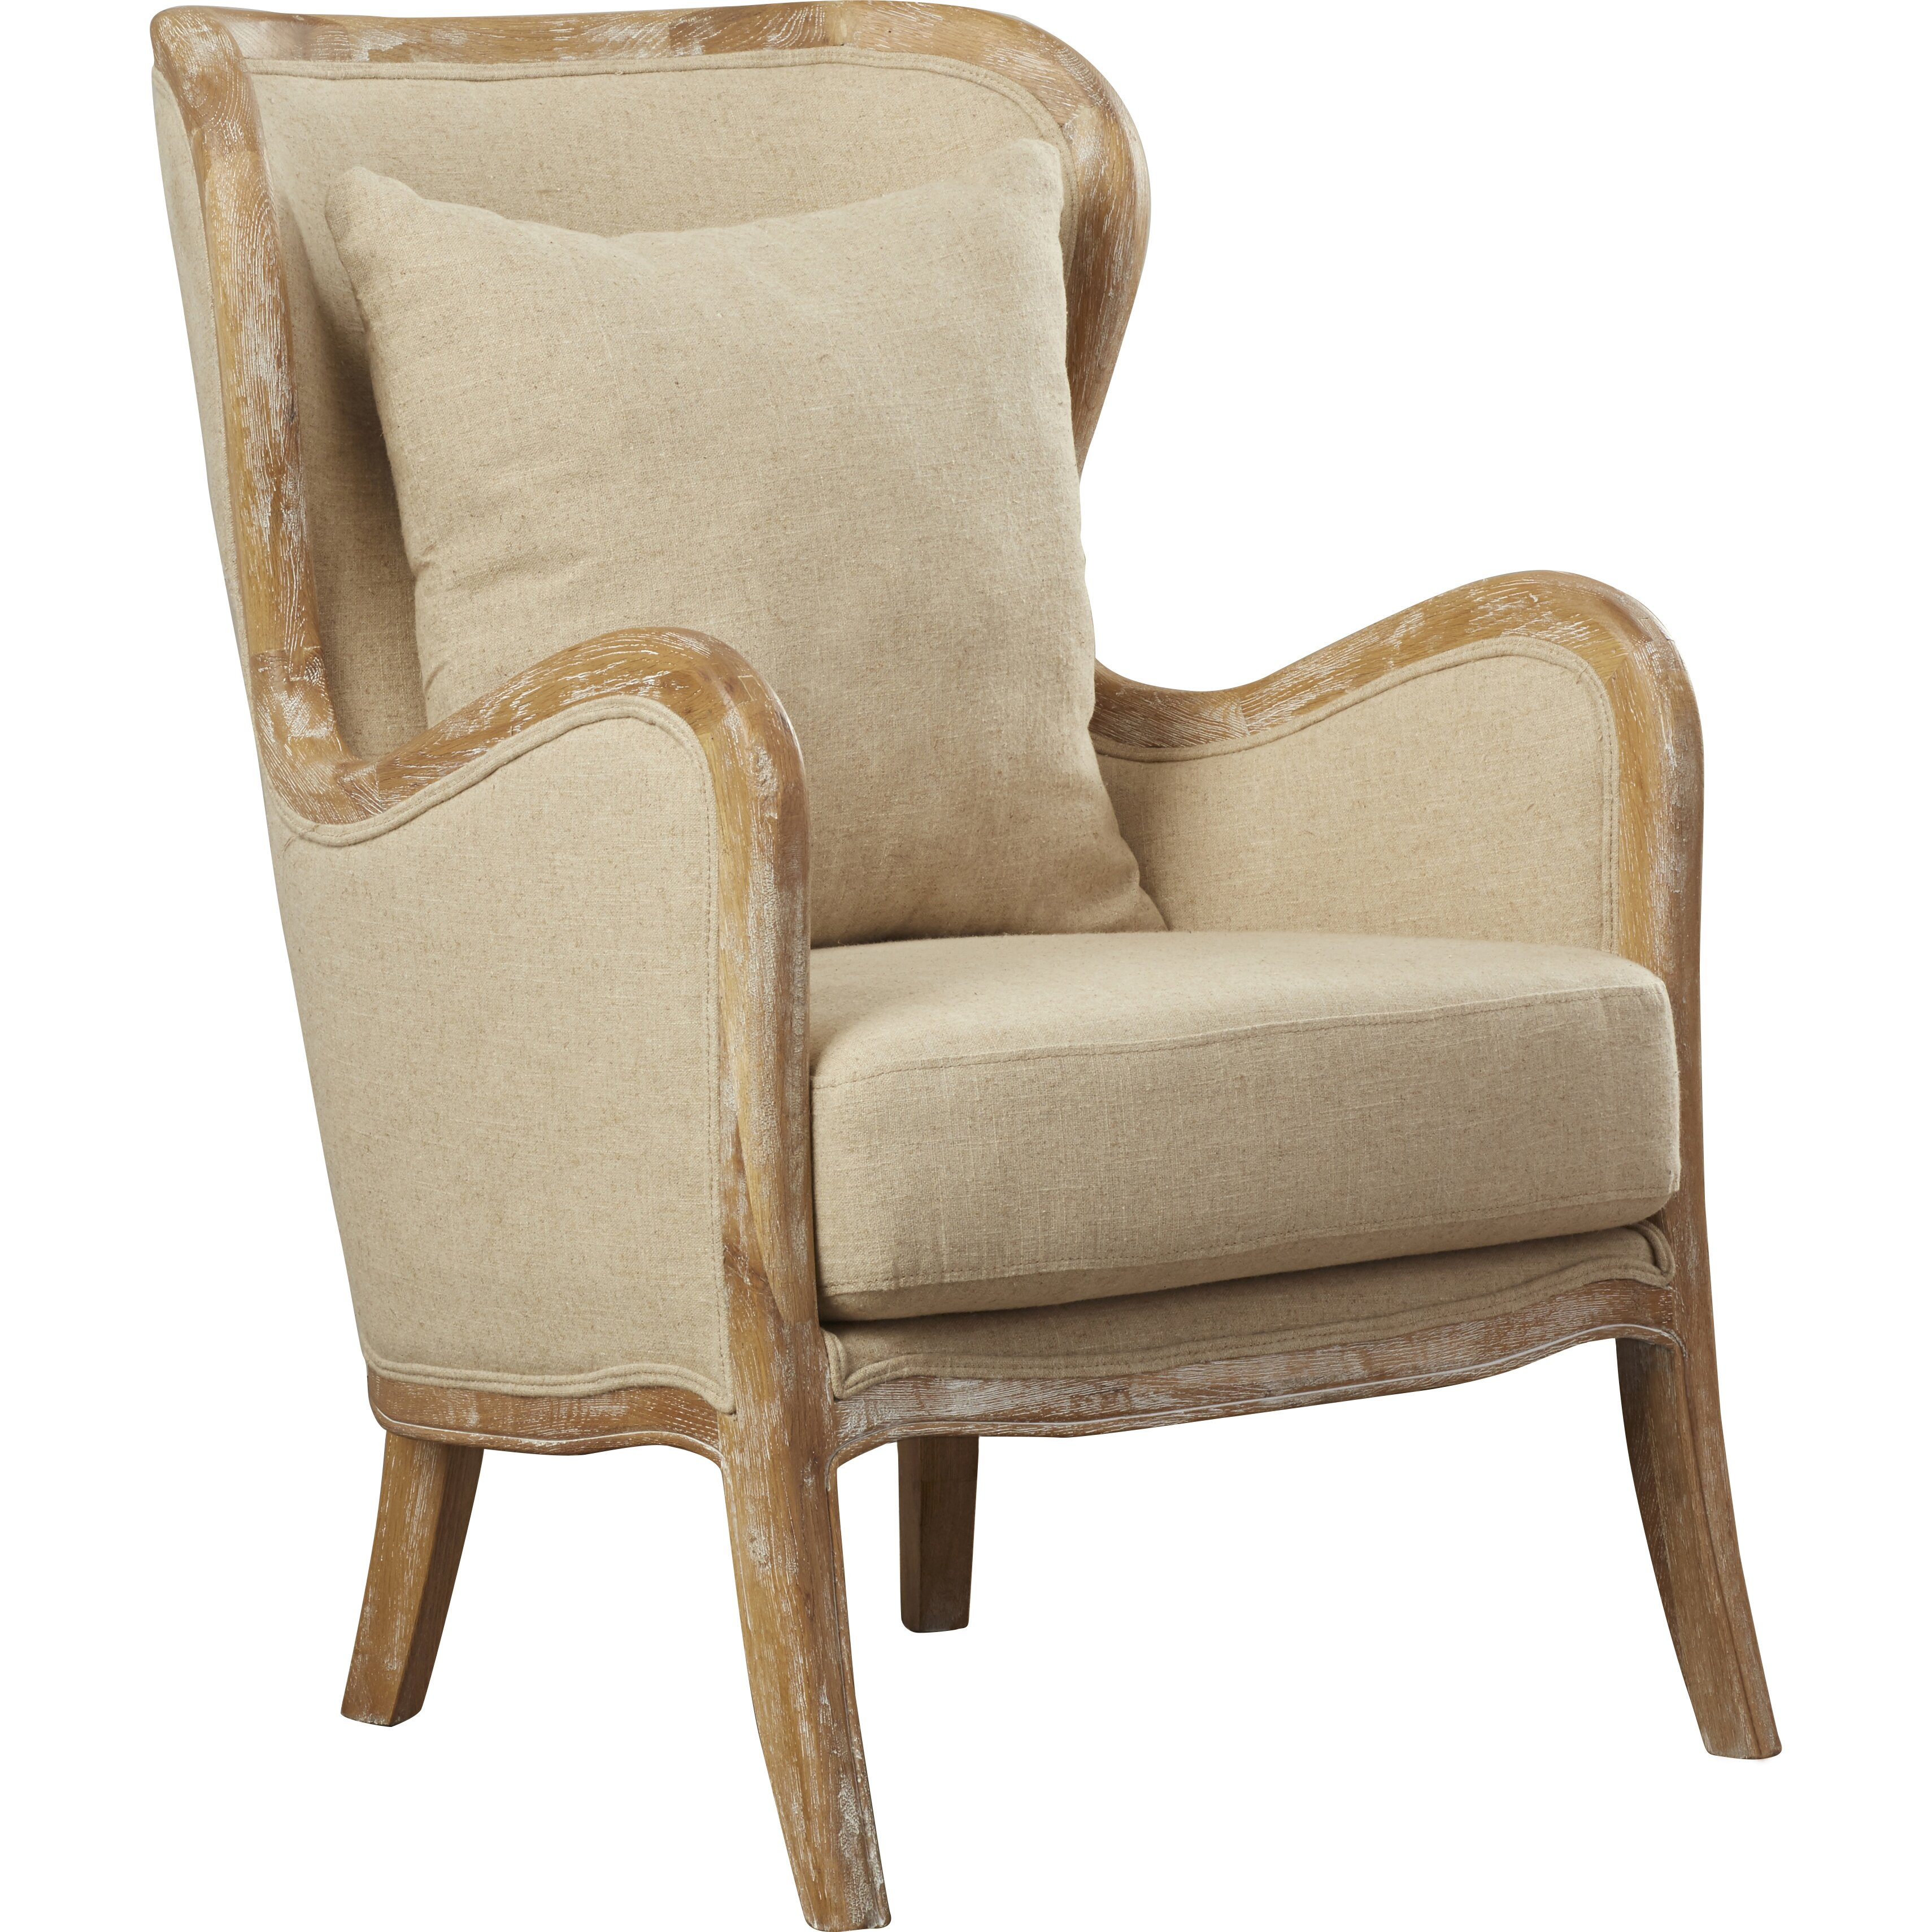 Lark manor lilya accent wingback chair reviews wayfair for Wingback chair